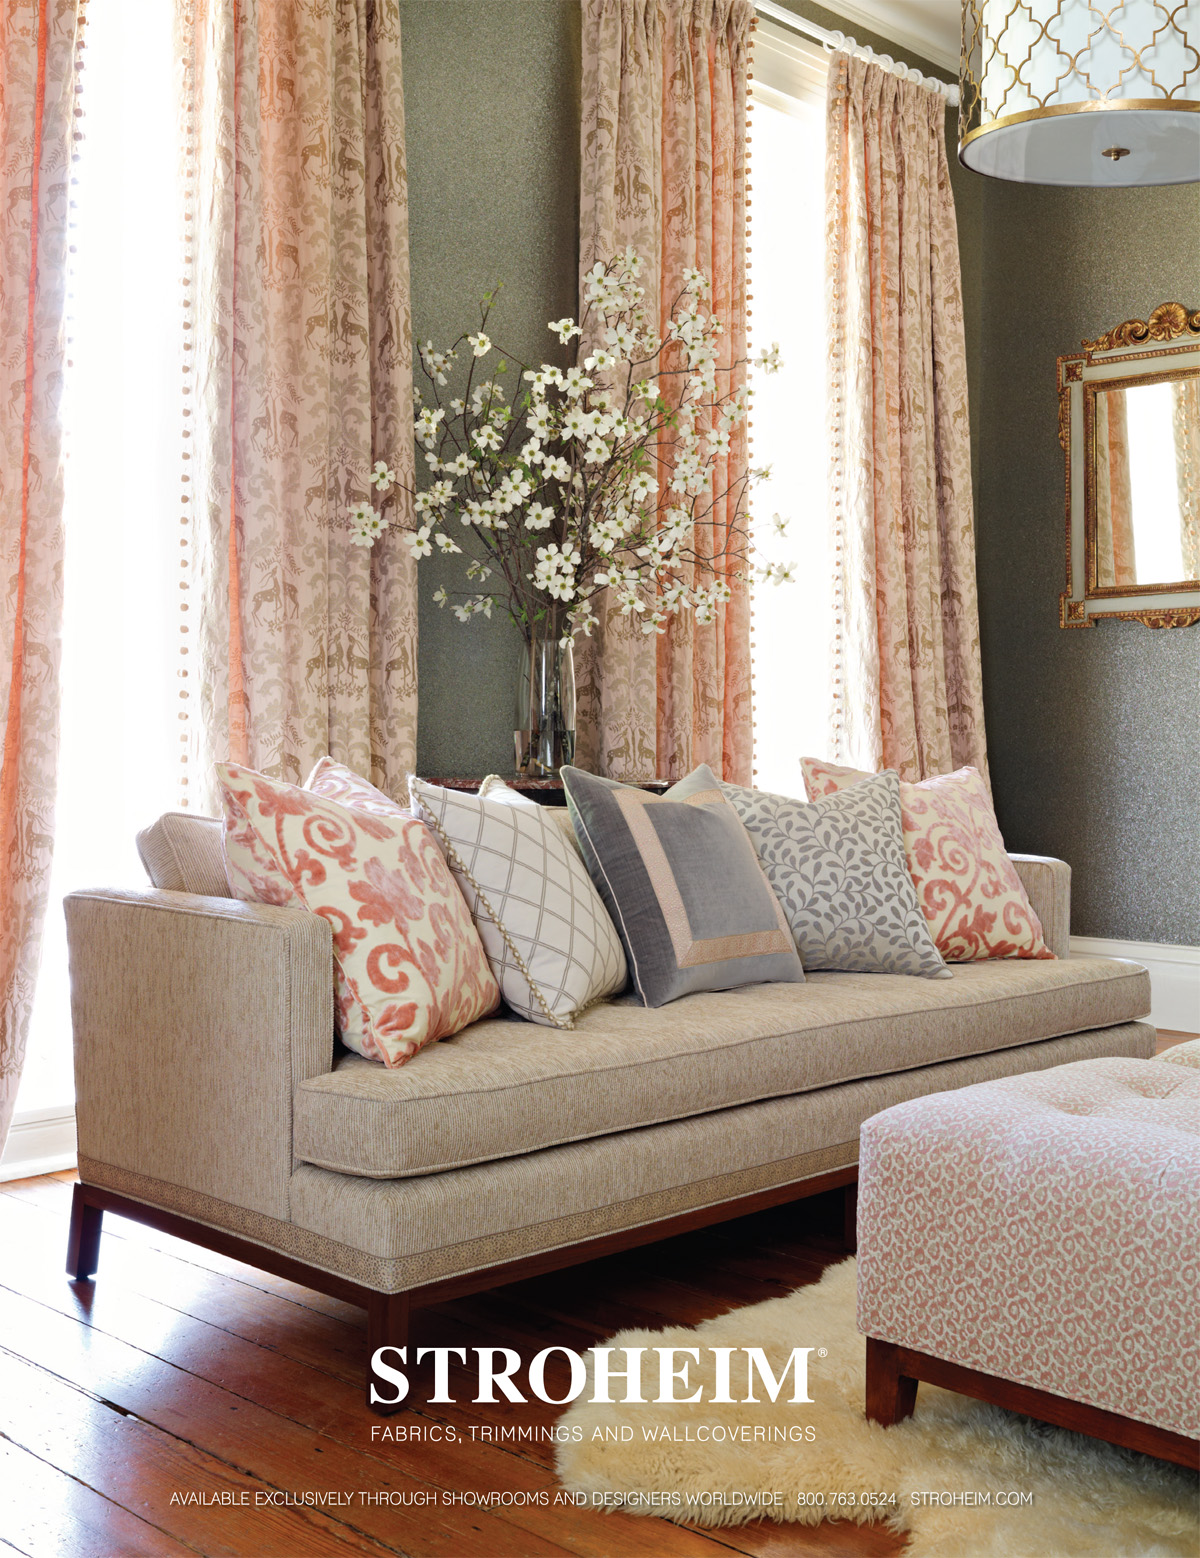 Stroheim on trend and in the pink stonemill for Living room ideas pink and grey